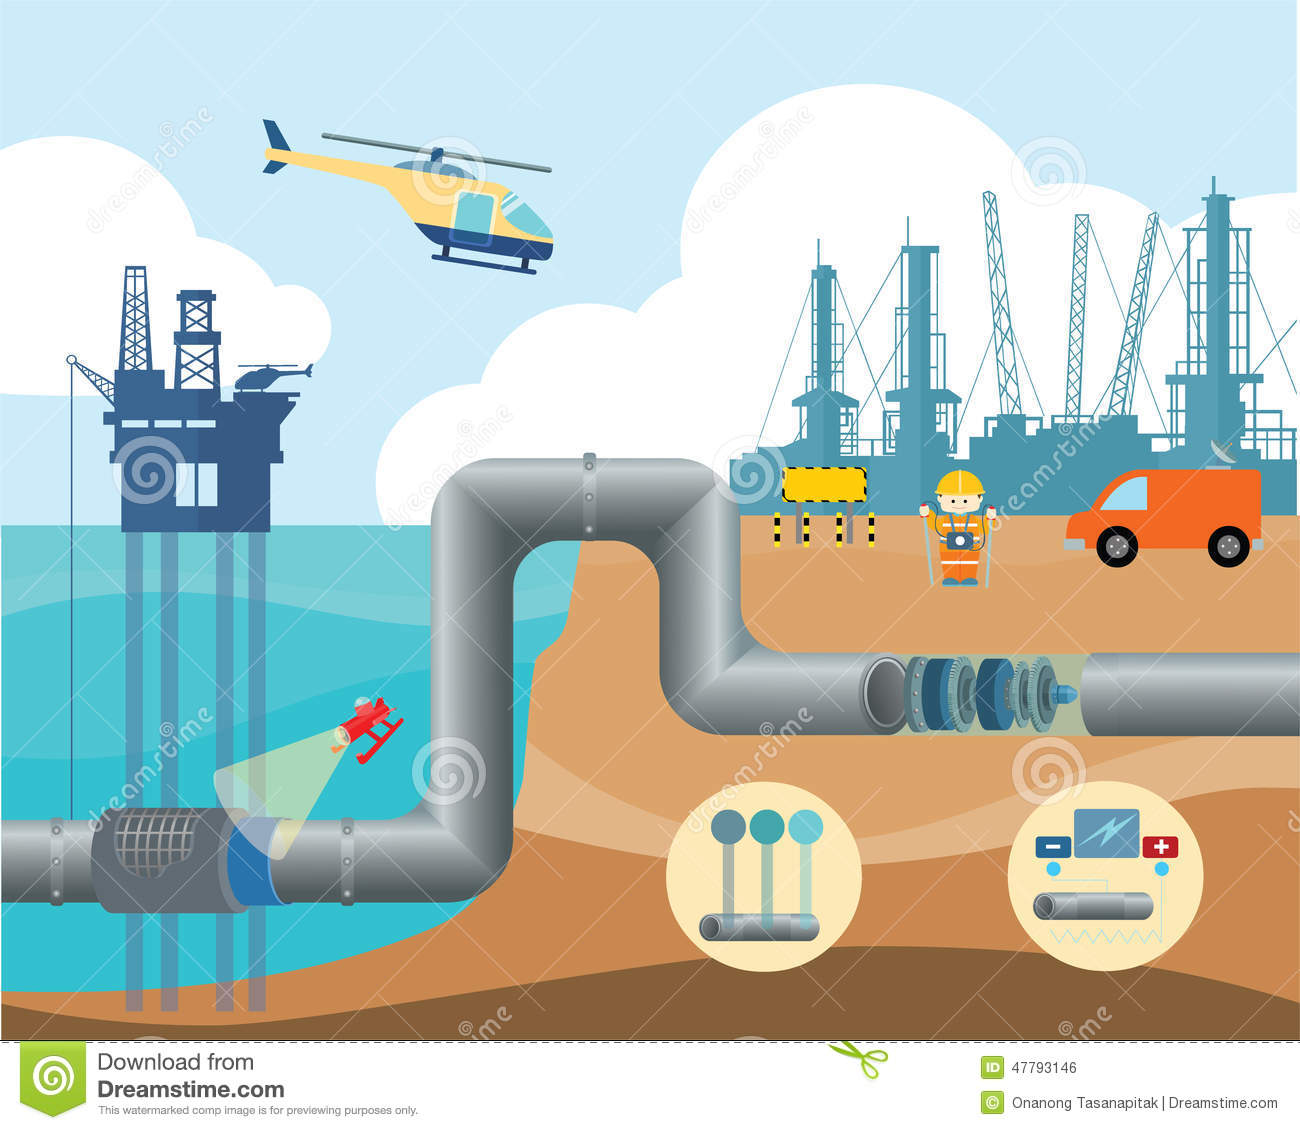 remote helicopter with camera with Stock Illustration Fuel Pipeline Management Infographic Illustration Image47793146 on 5915029625 also 185ee8a55ba0315845eed3cc3aa214c8 further Drones Octa With Camera moreover Intel Drones For Sale furthermore 32263020103.